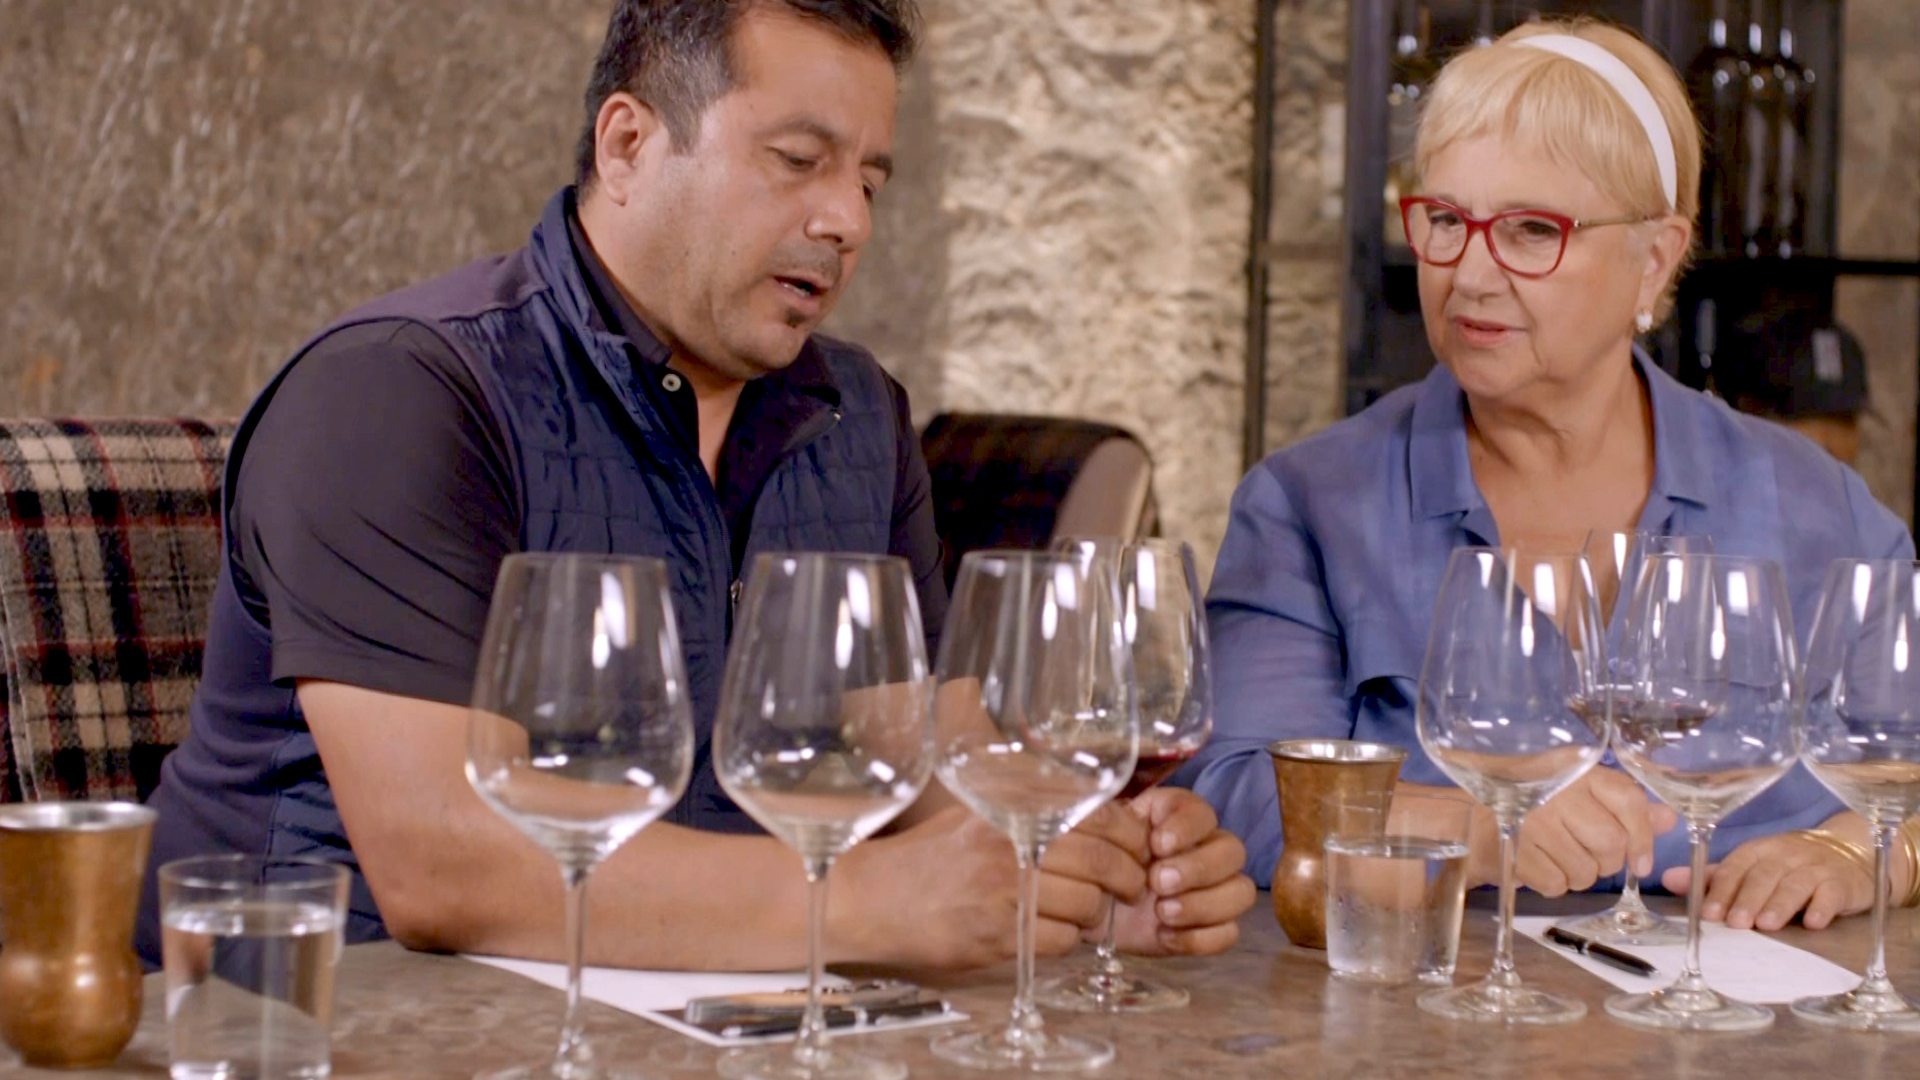 Ramiro Herrera & Lidia sample some of the wines toasted in his barrels